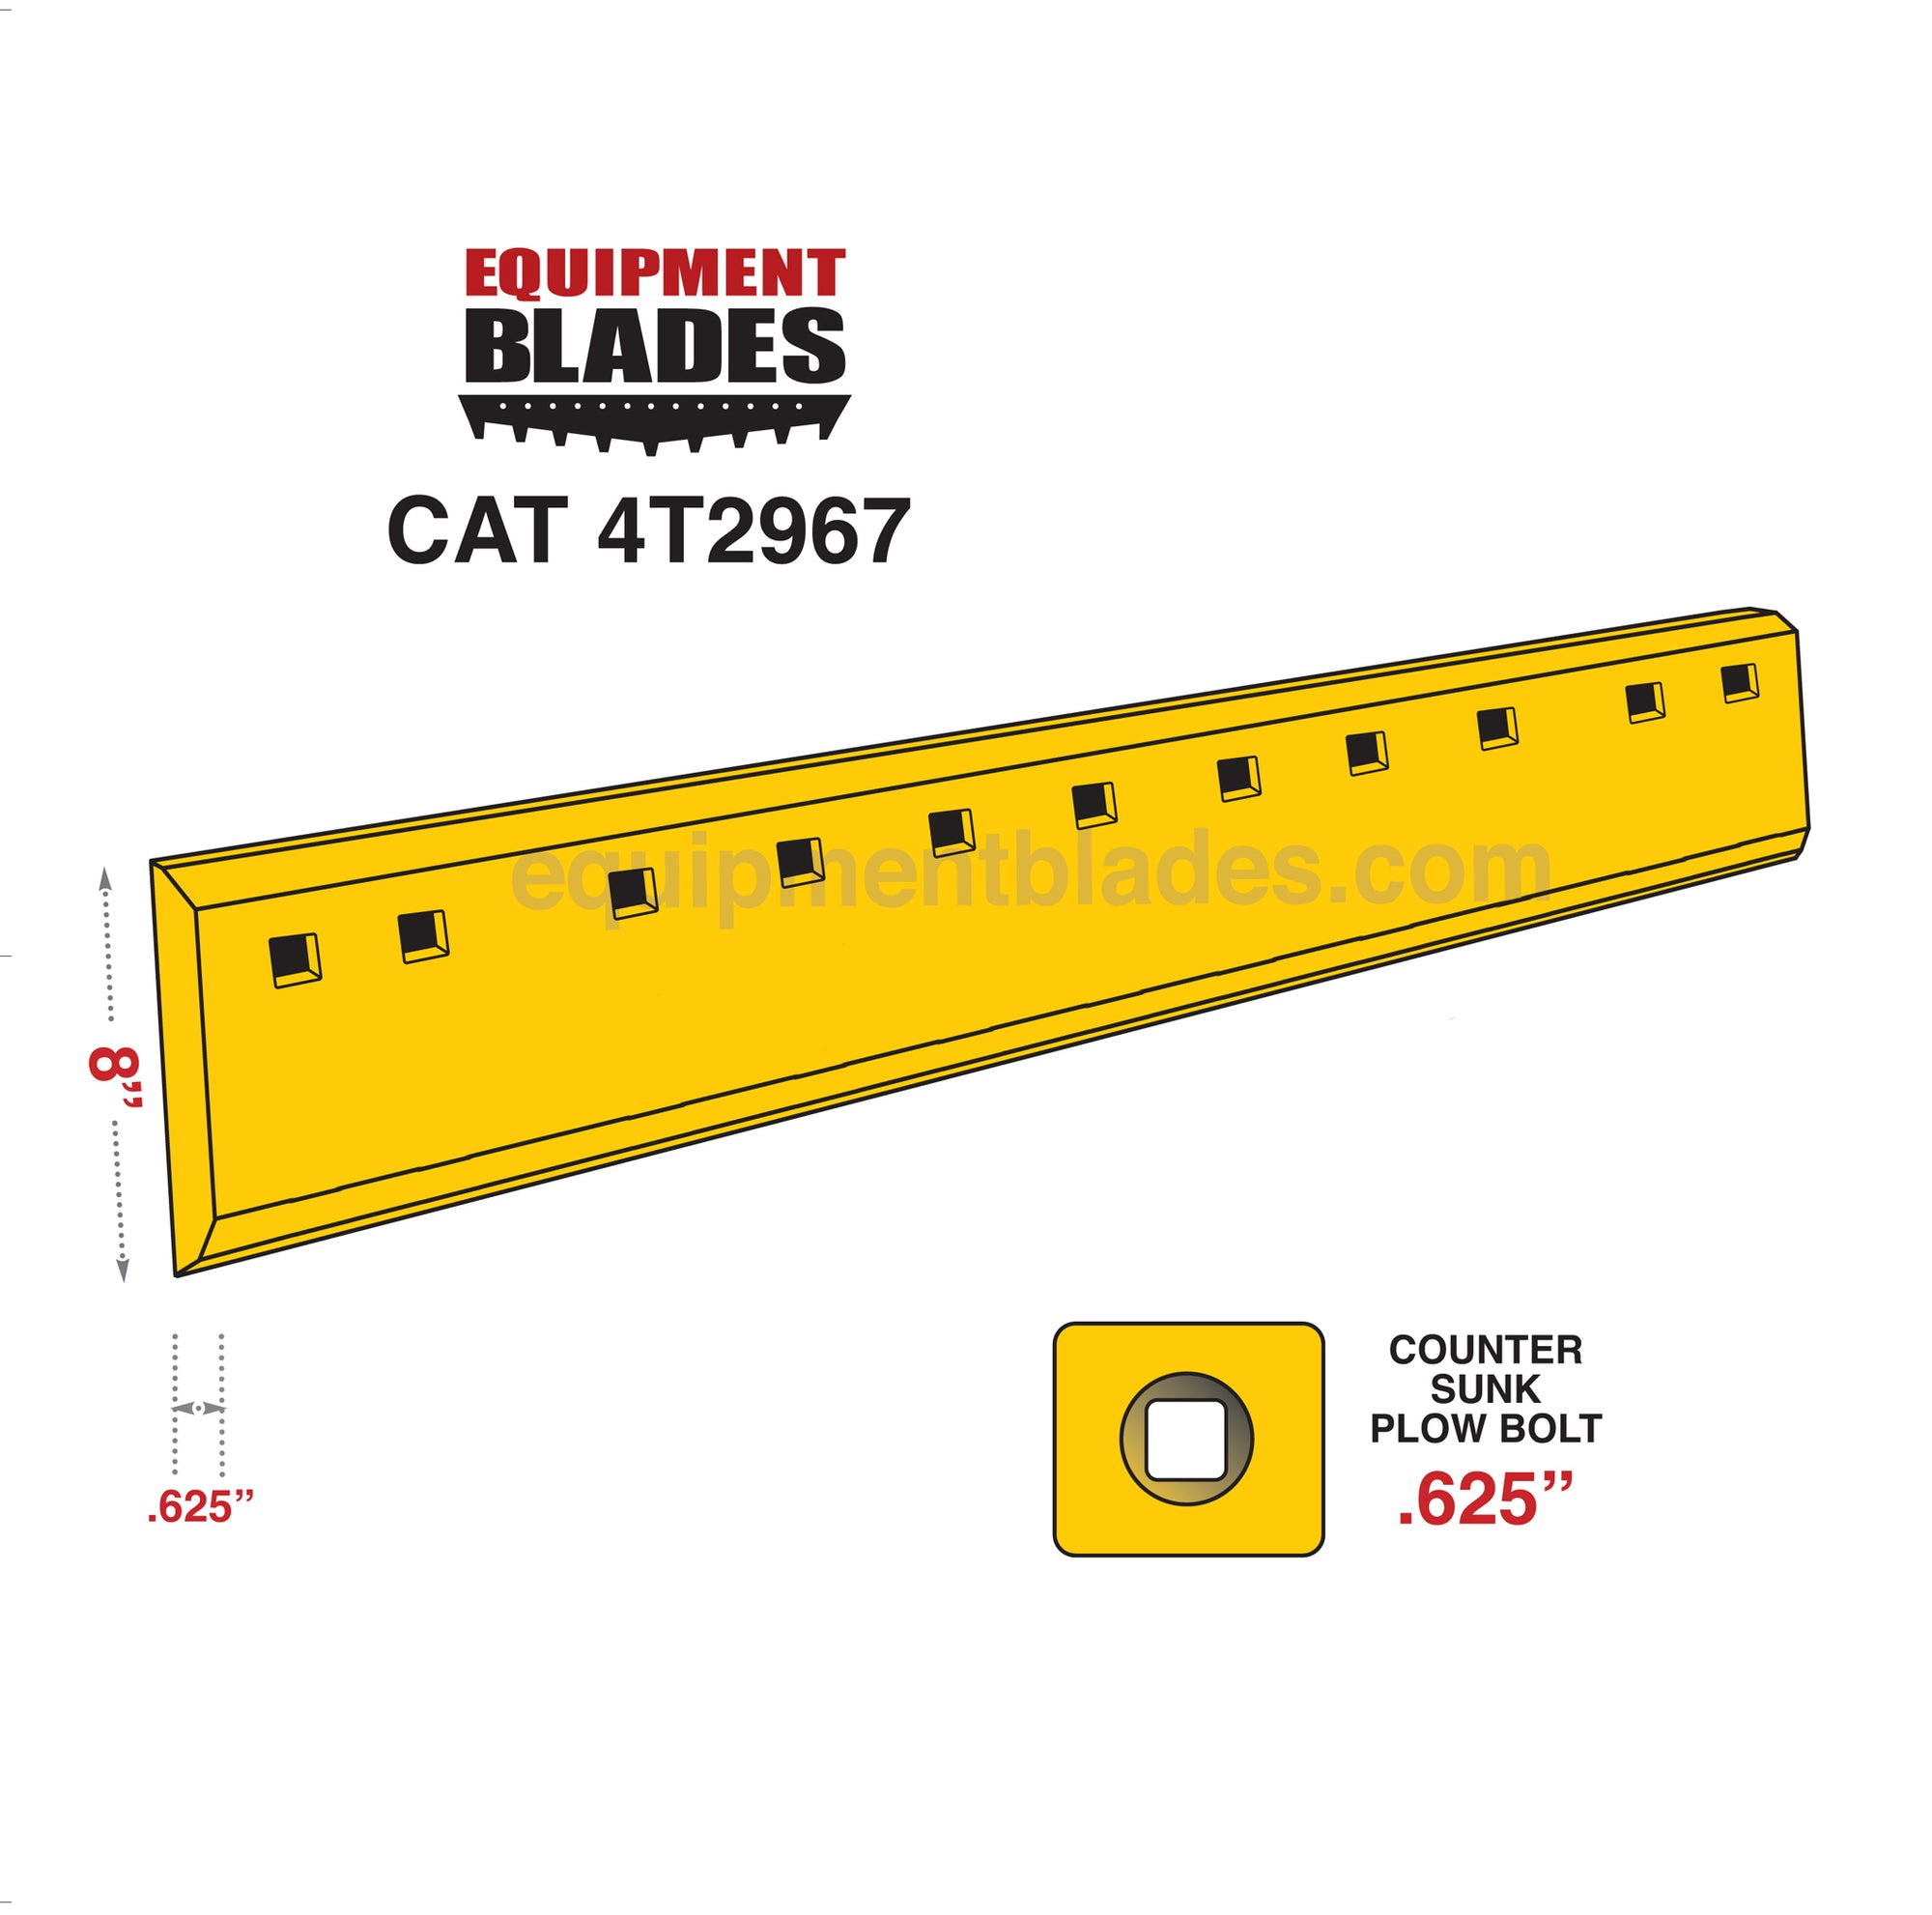 CAT 4T2967-Grader Blades-Equipment Blades Inc-Equipment Blades Inc